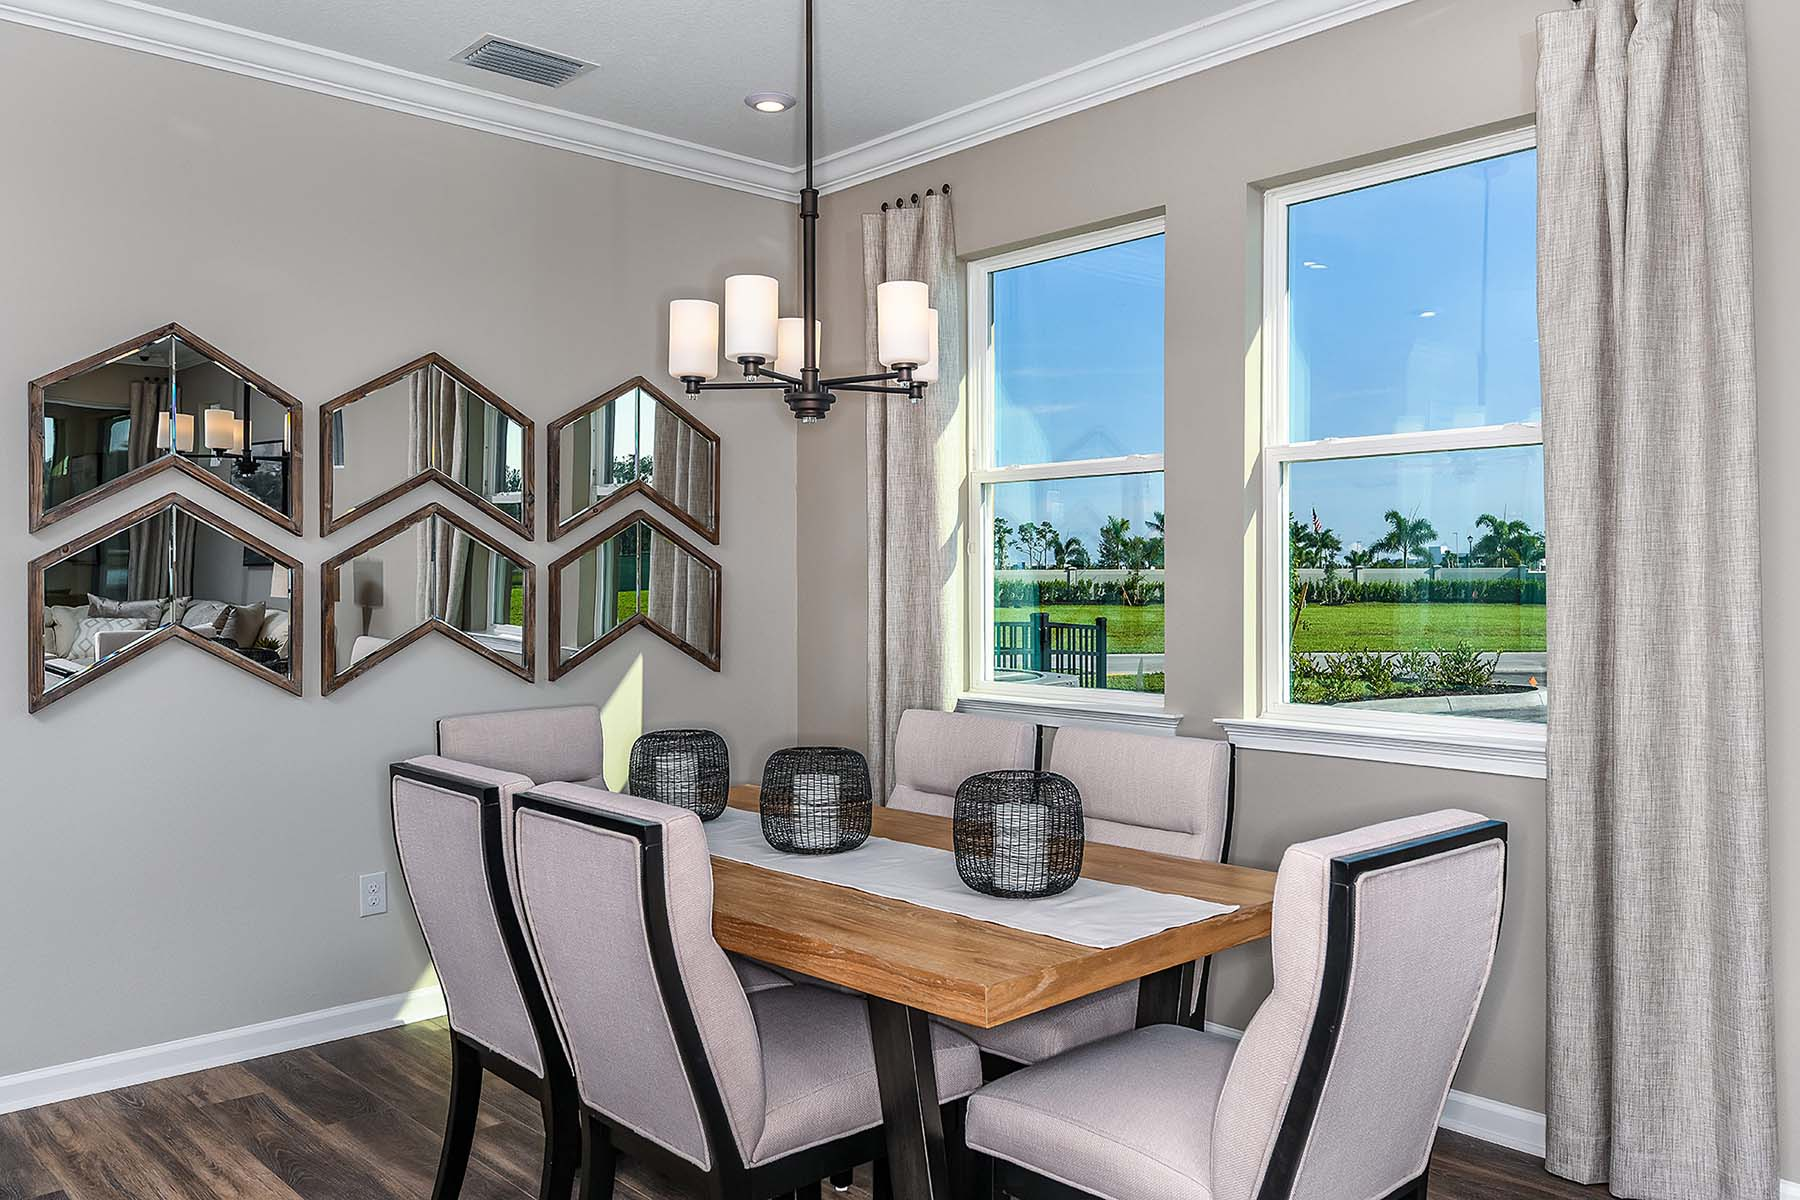 Largo Plan Dining at Bonavie Cove in Fort Myers Florida by Mattamy Homes